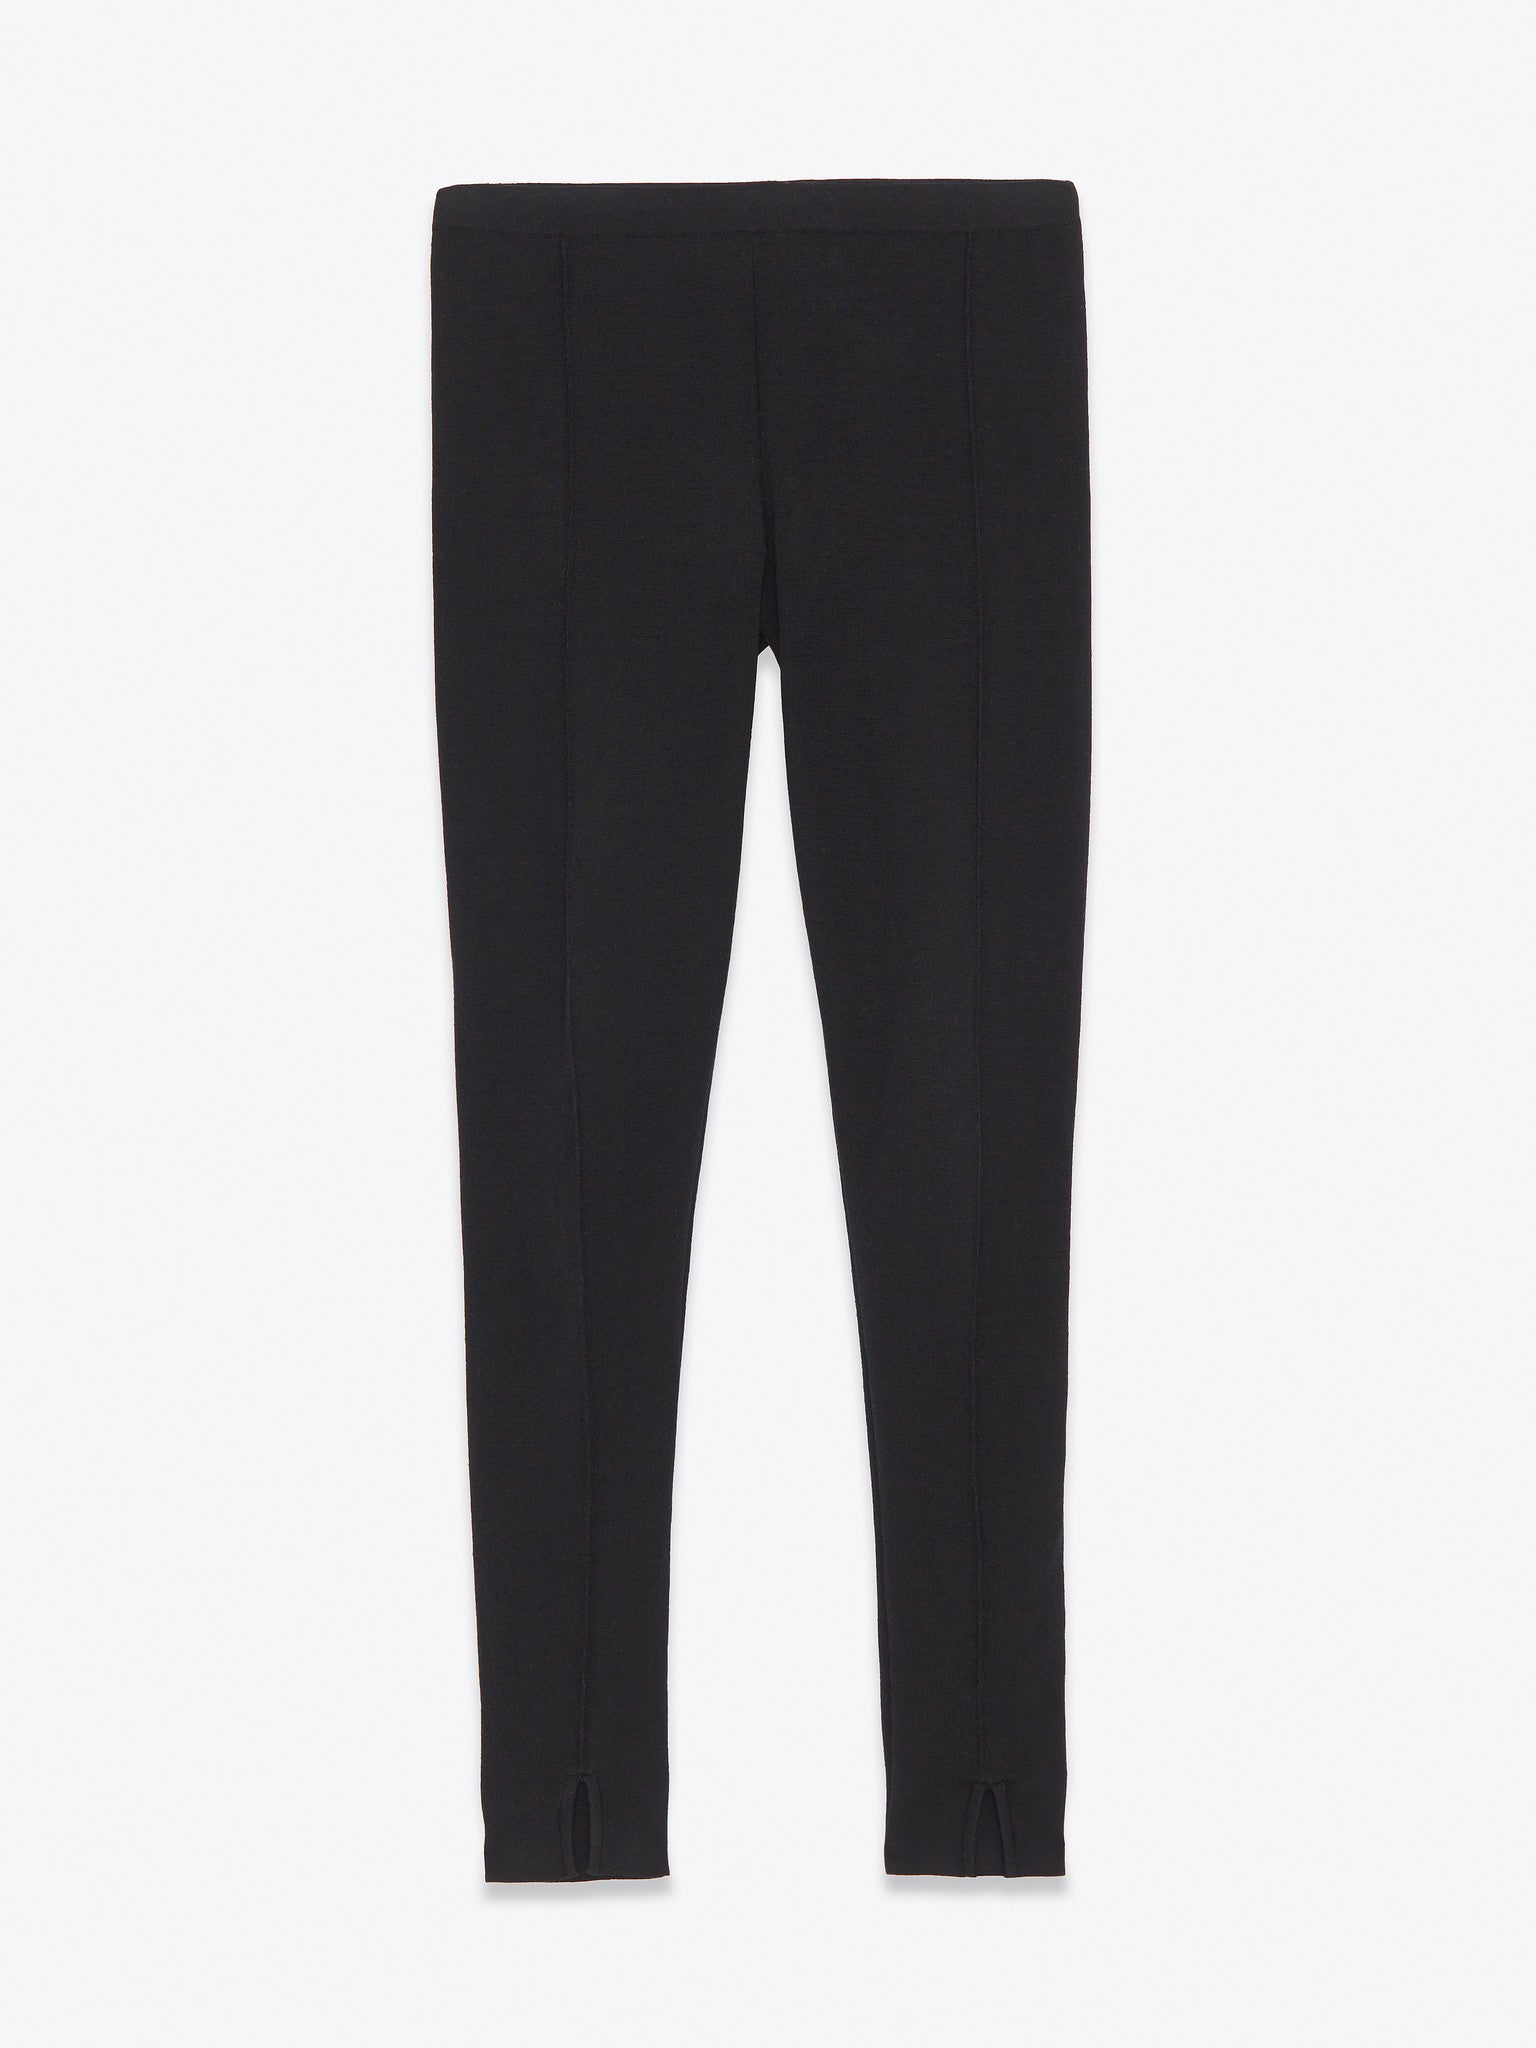 04-ply Technical Everything Leggings